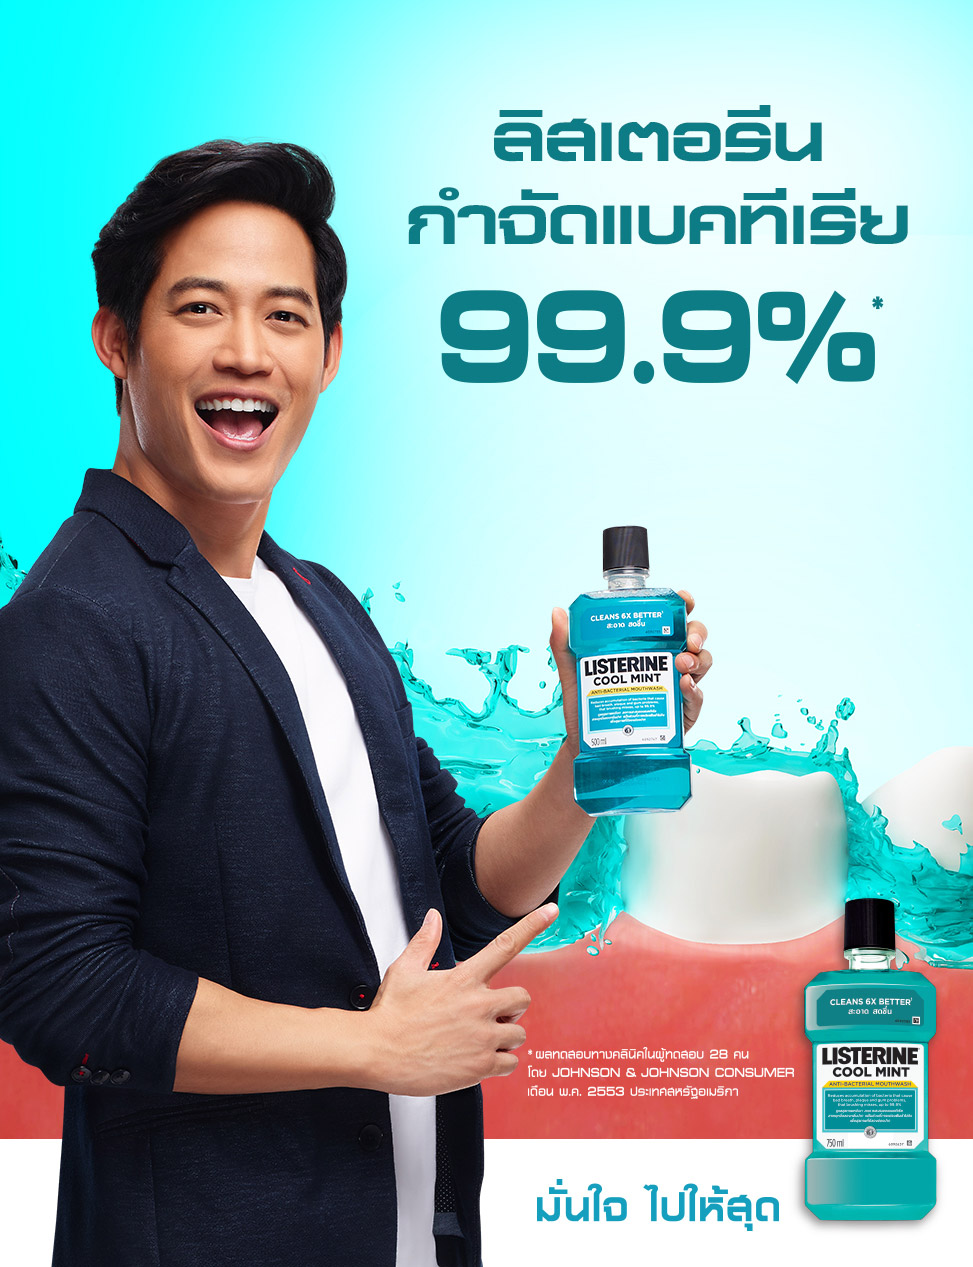 listerine-cool-mint-banner